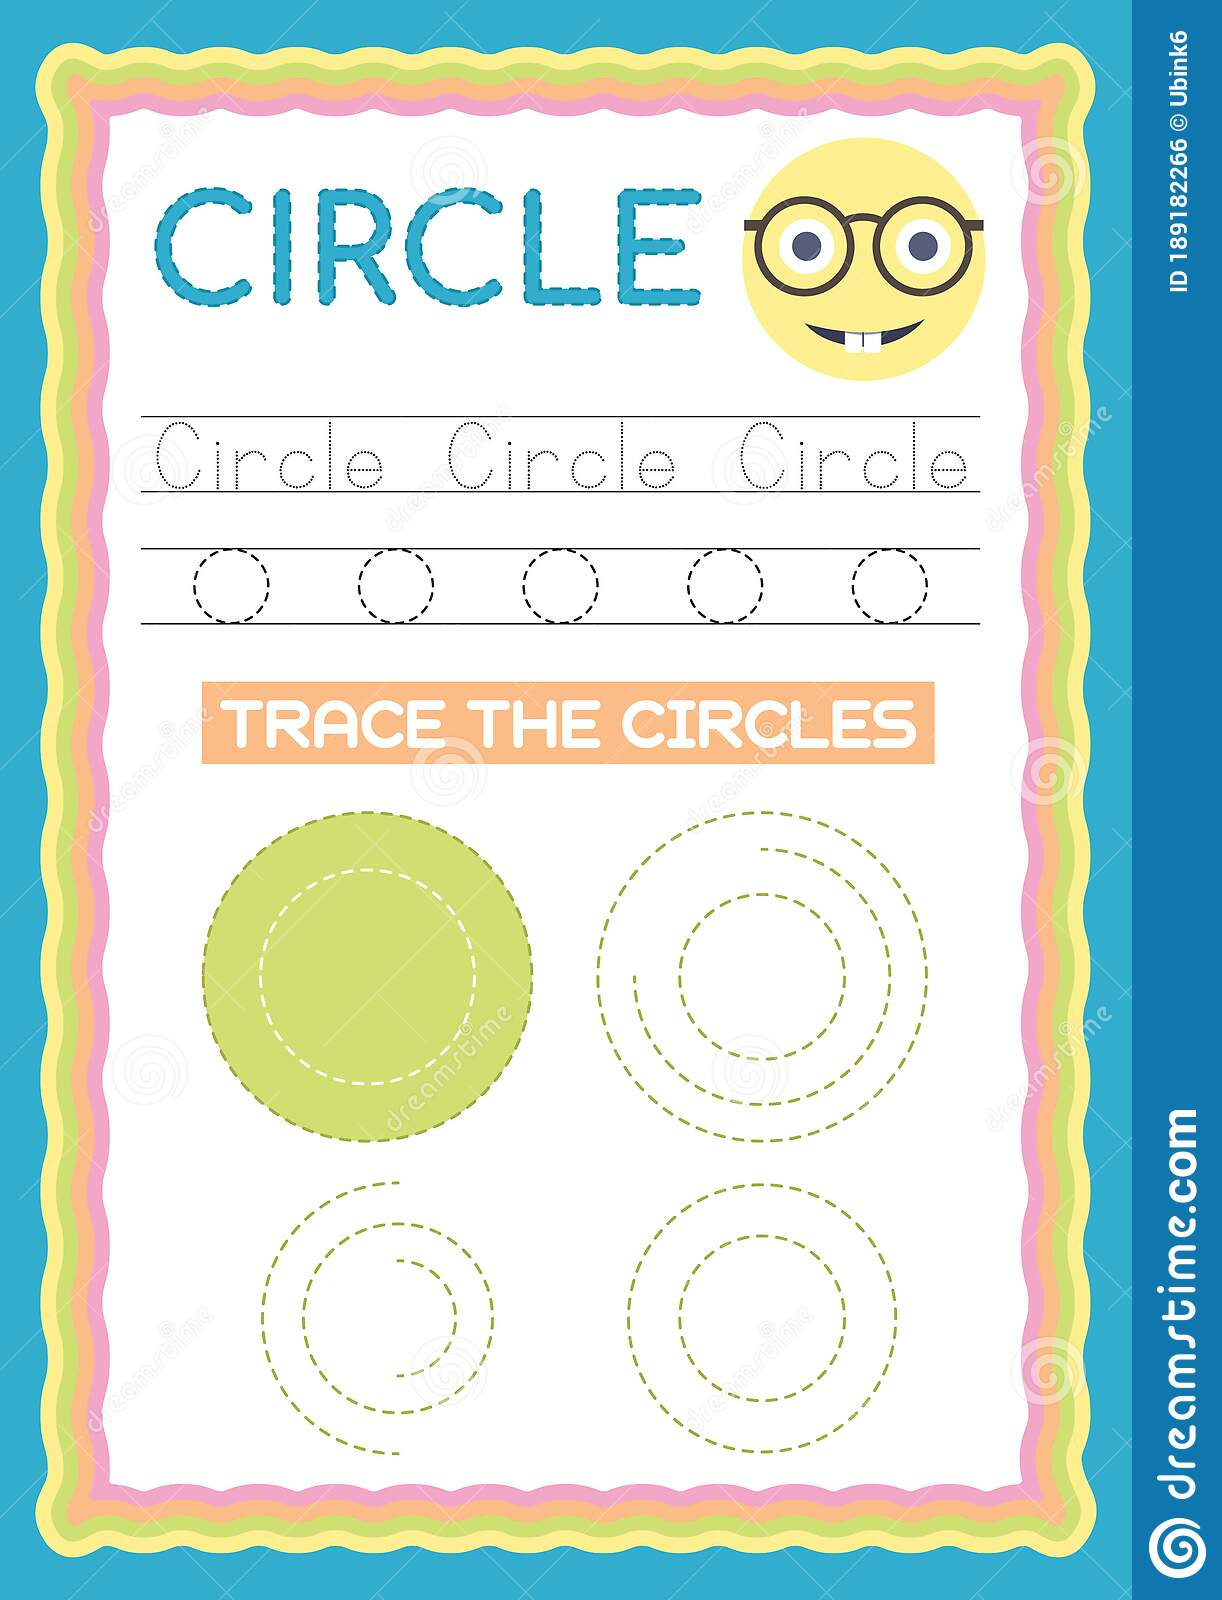 Preschool Colorful Circle Shape Tracing And Writing Daily